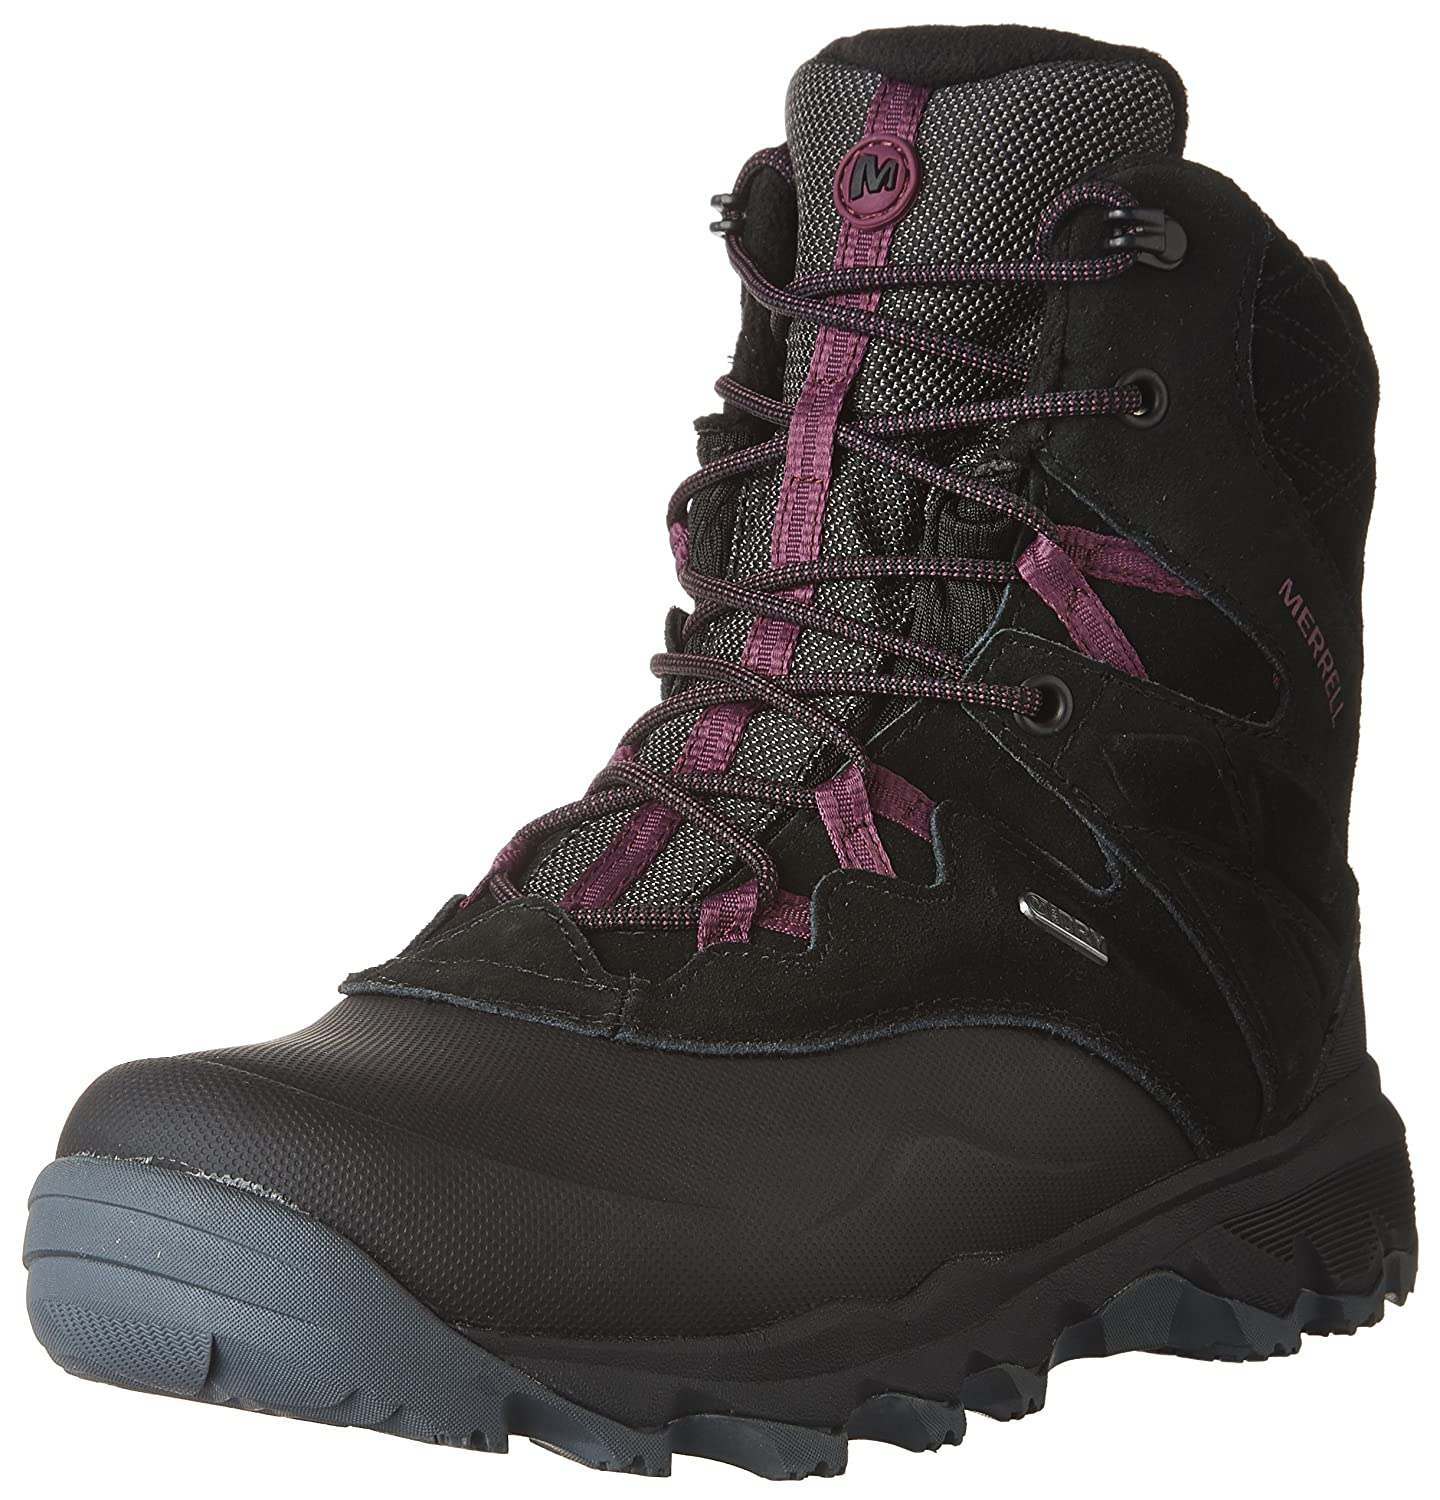 Merrell Women's Thermo Shiver 8 WTPF Hiking Boots J15902